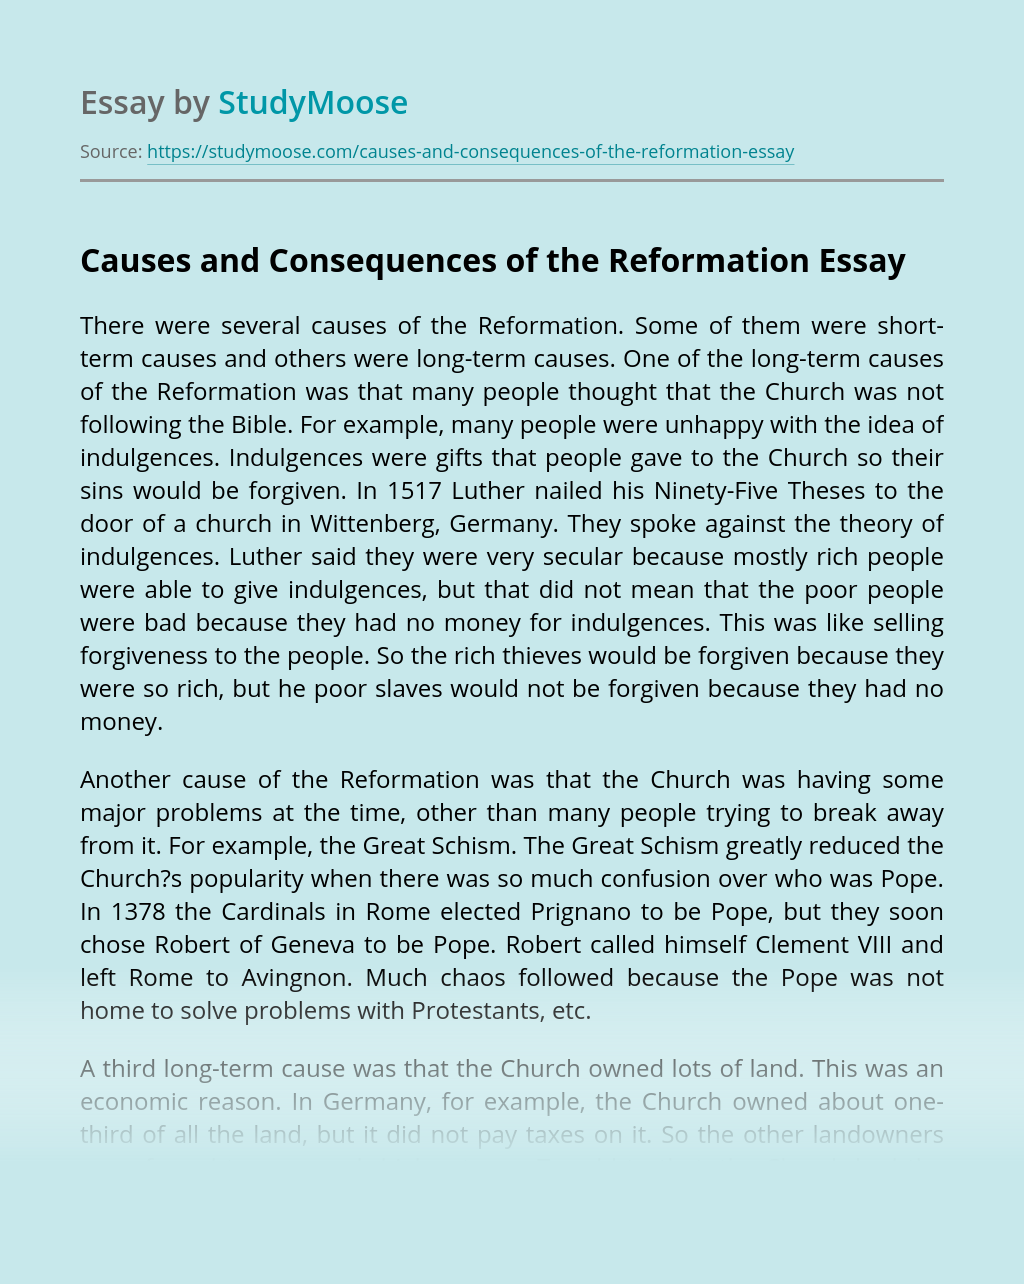 Causes and Consequences of the Reformation